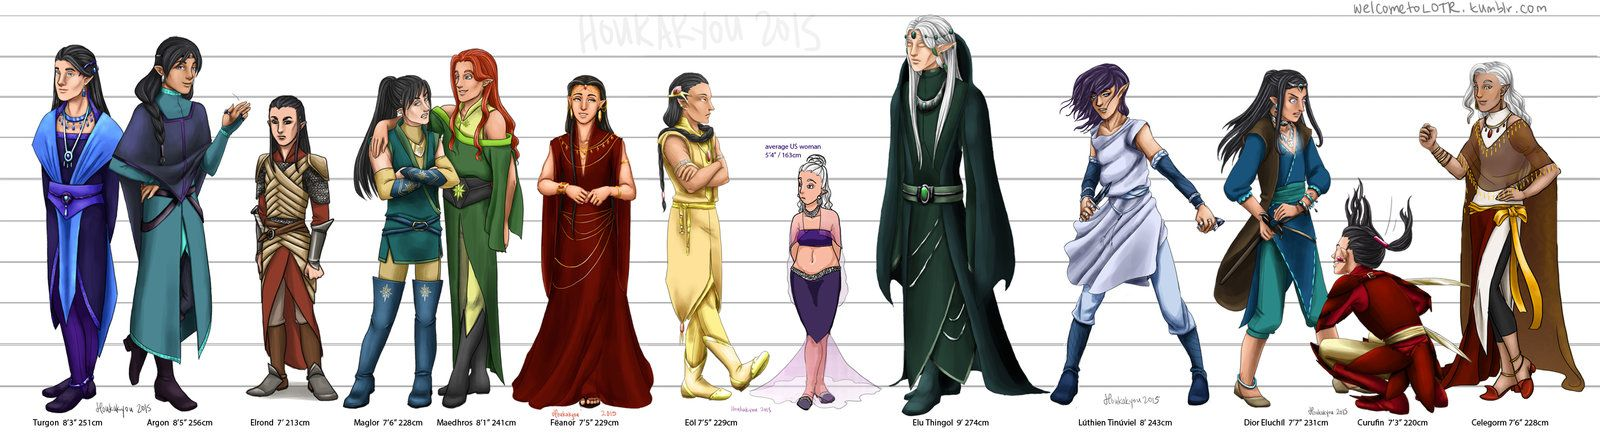 Lord of the rings dwarf height